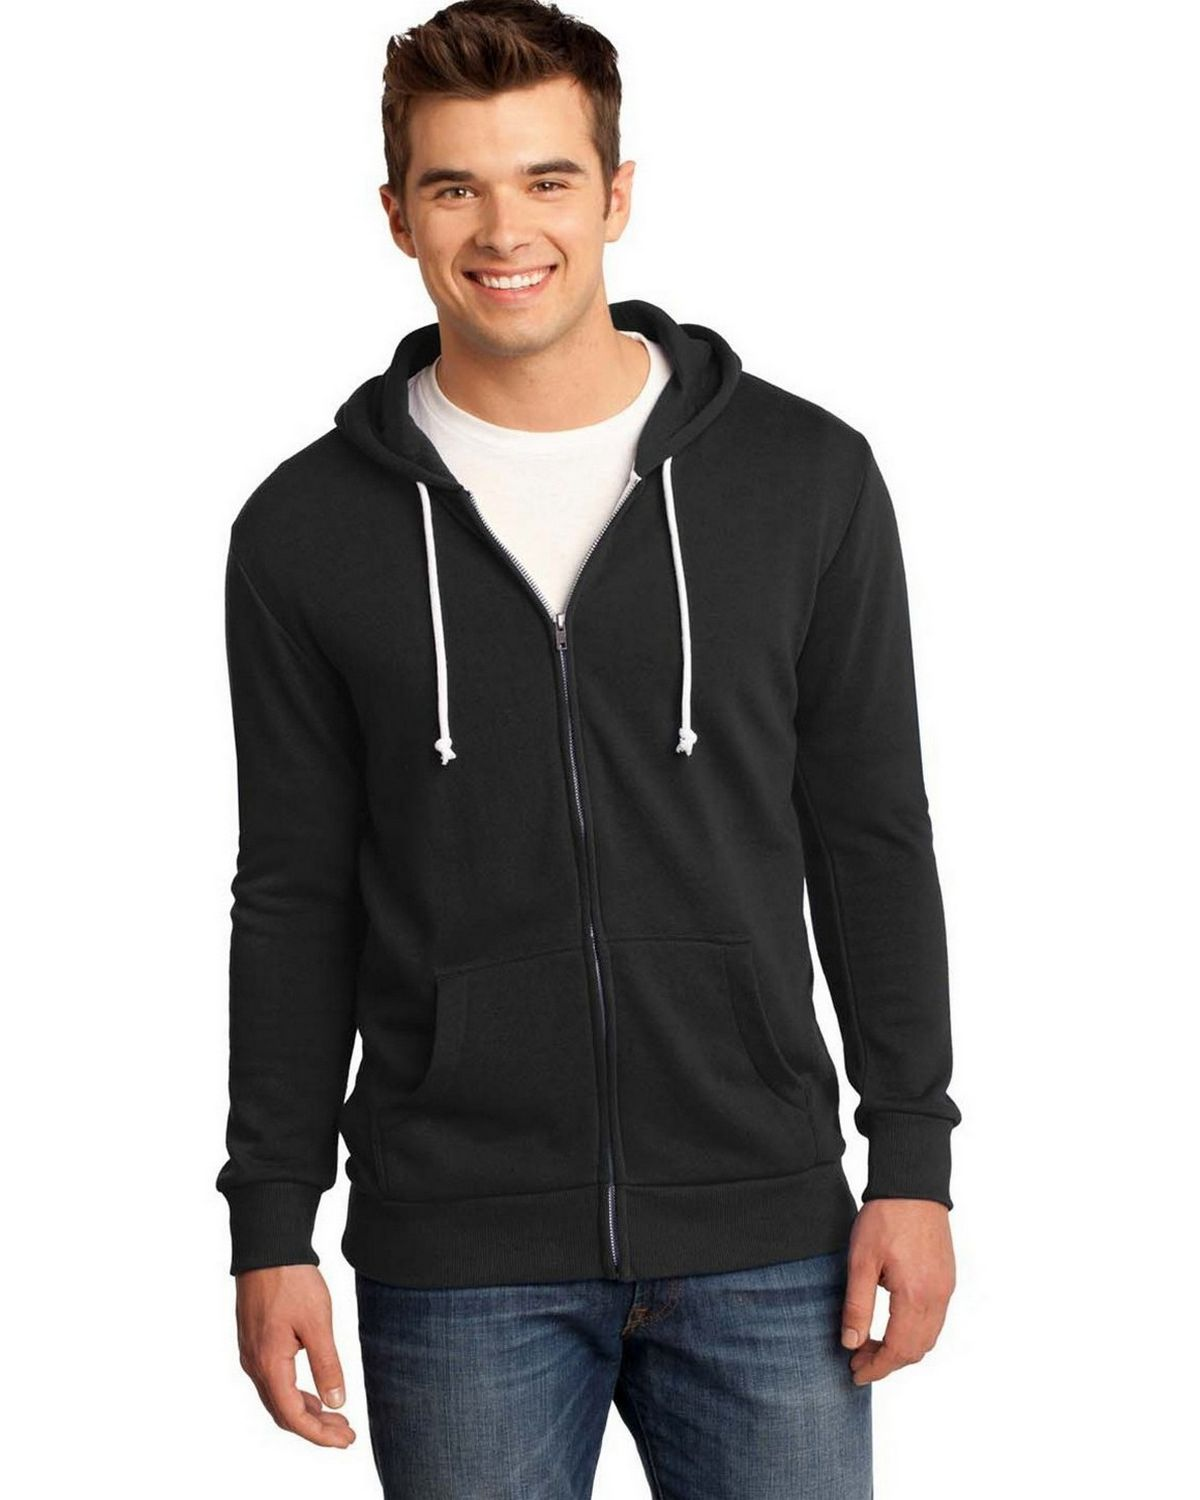 District DT190 Core Fleece Full Zip Hoodie - Black - L DT190